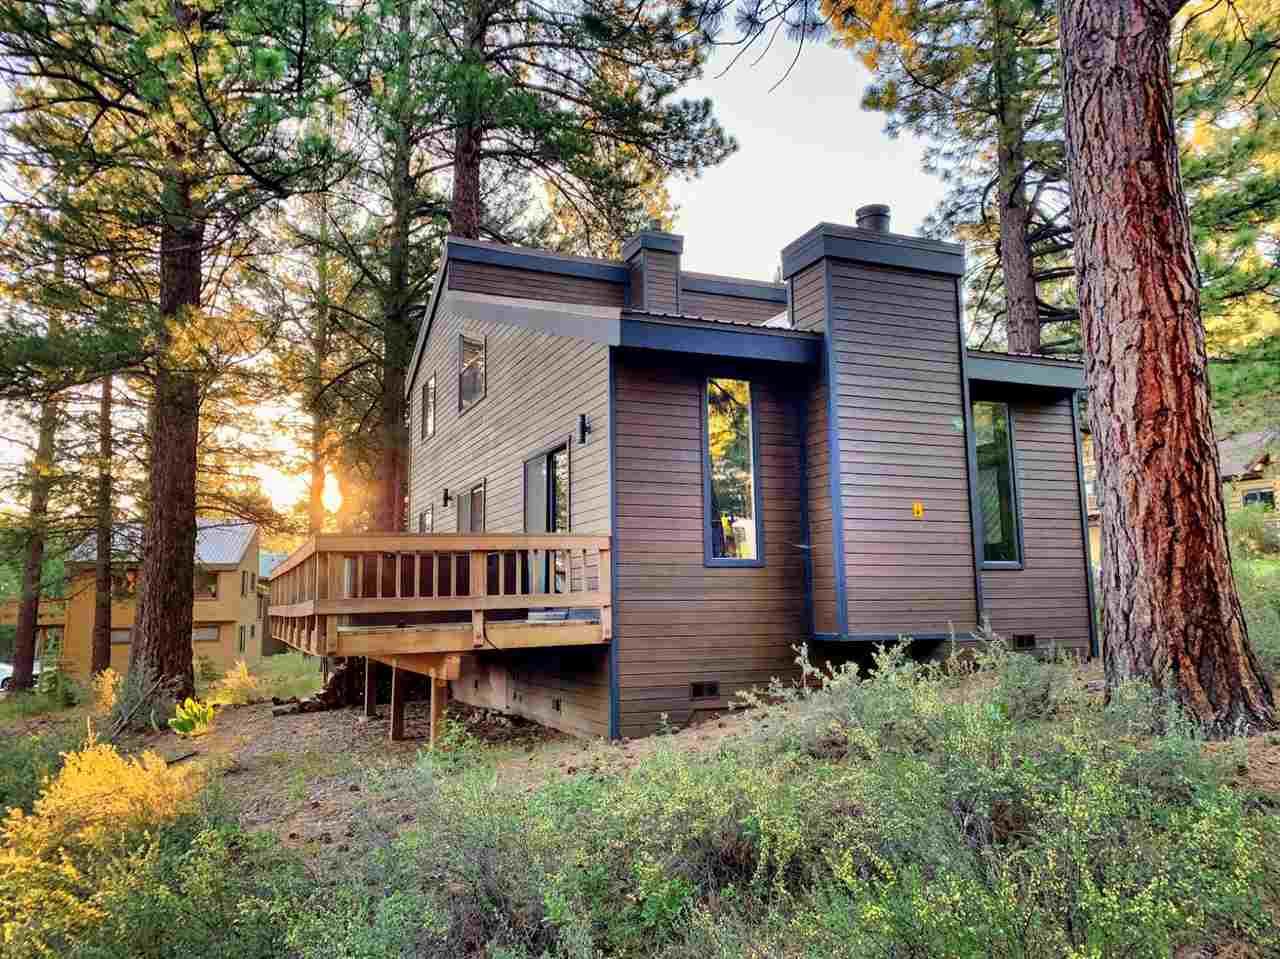 Single Family Home for Active at 287 Basque 287 Basque Truckee, California 96161 United States